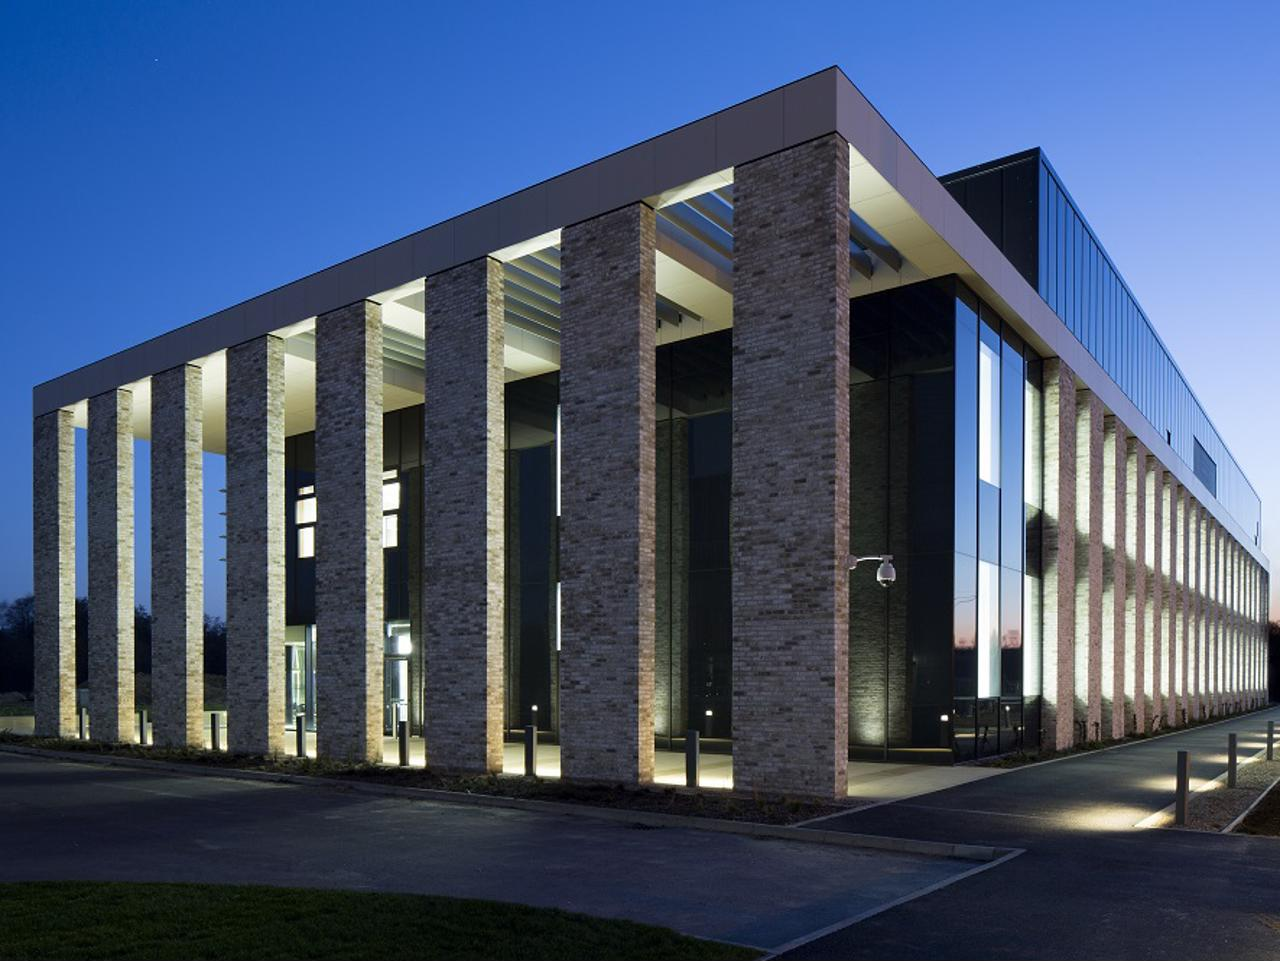 Medical Architecture And Art Projects Ltd